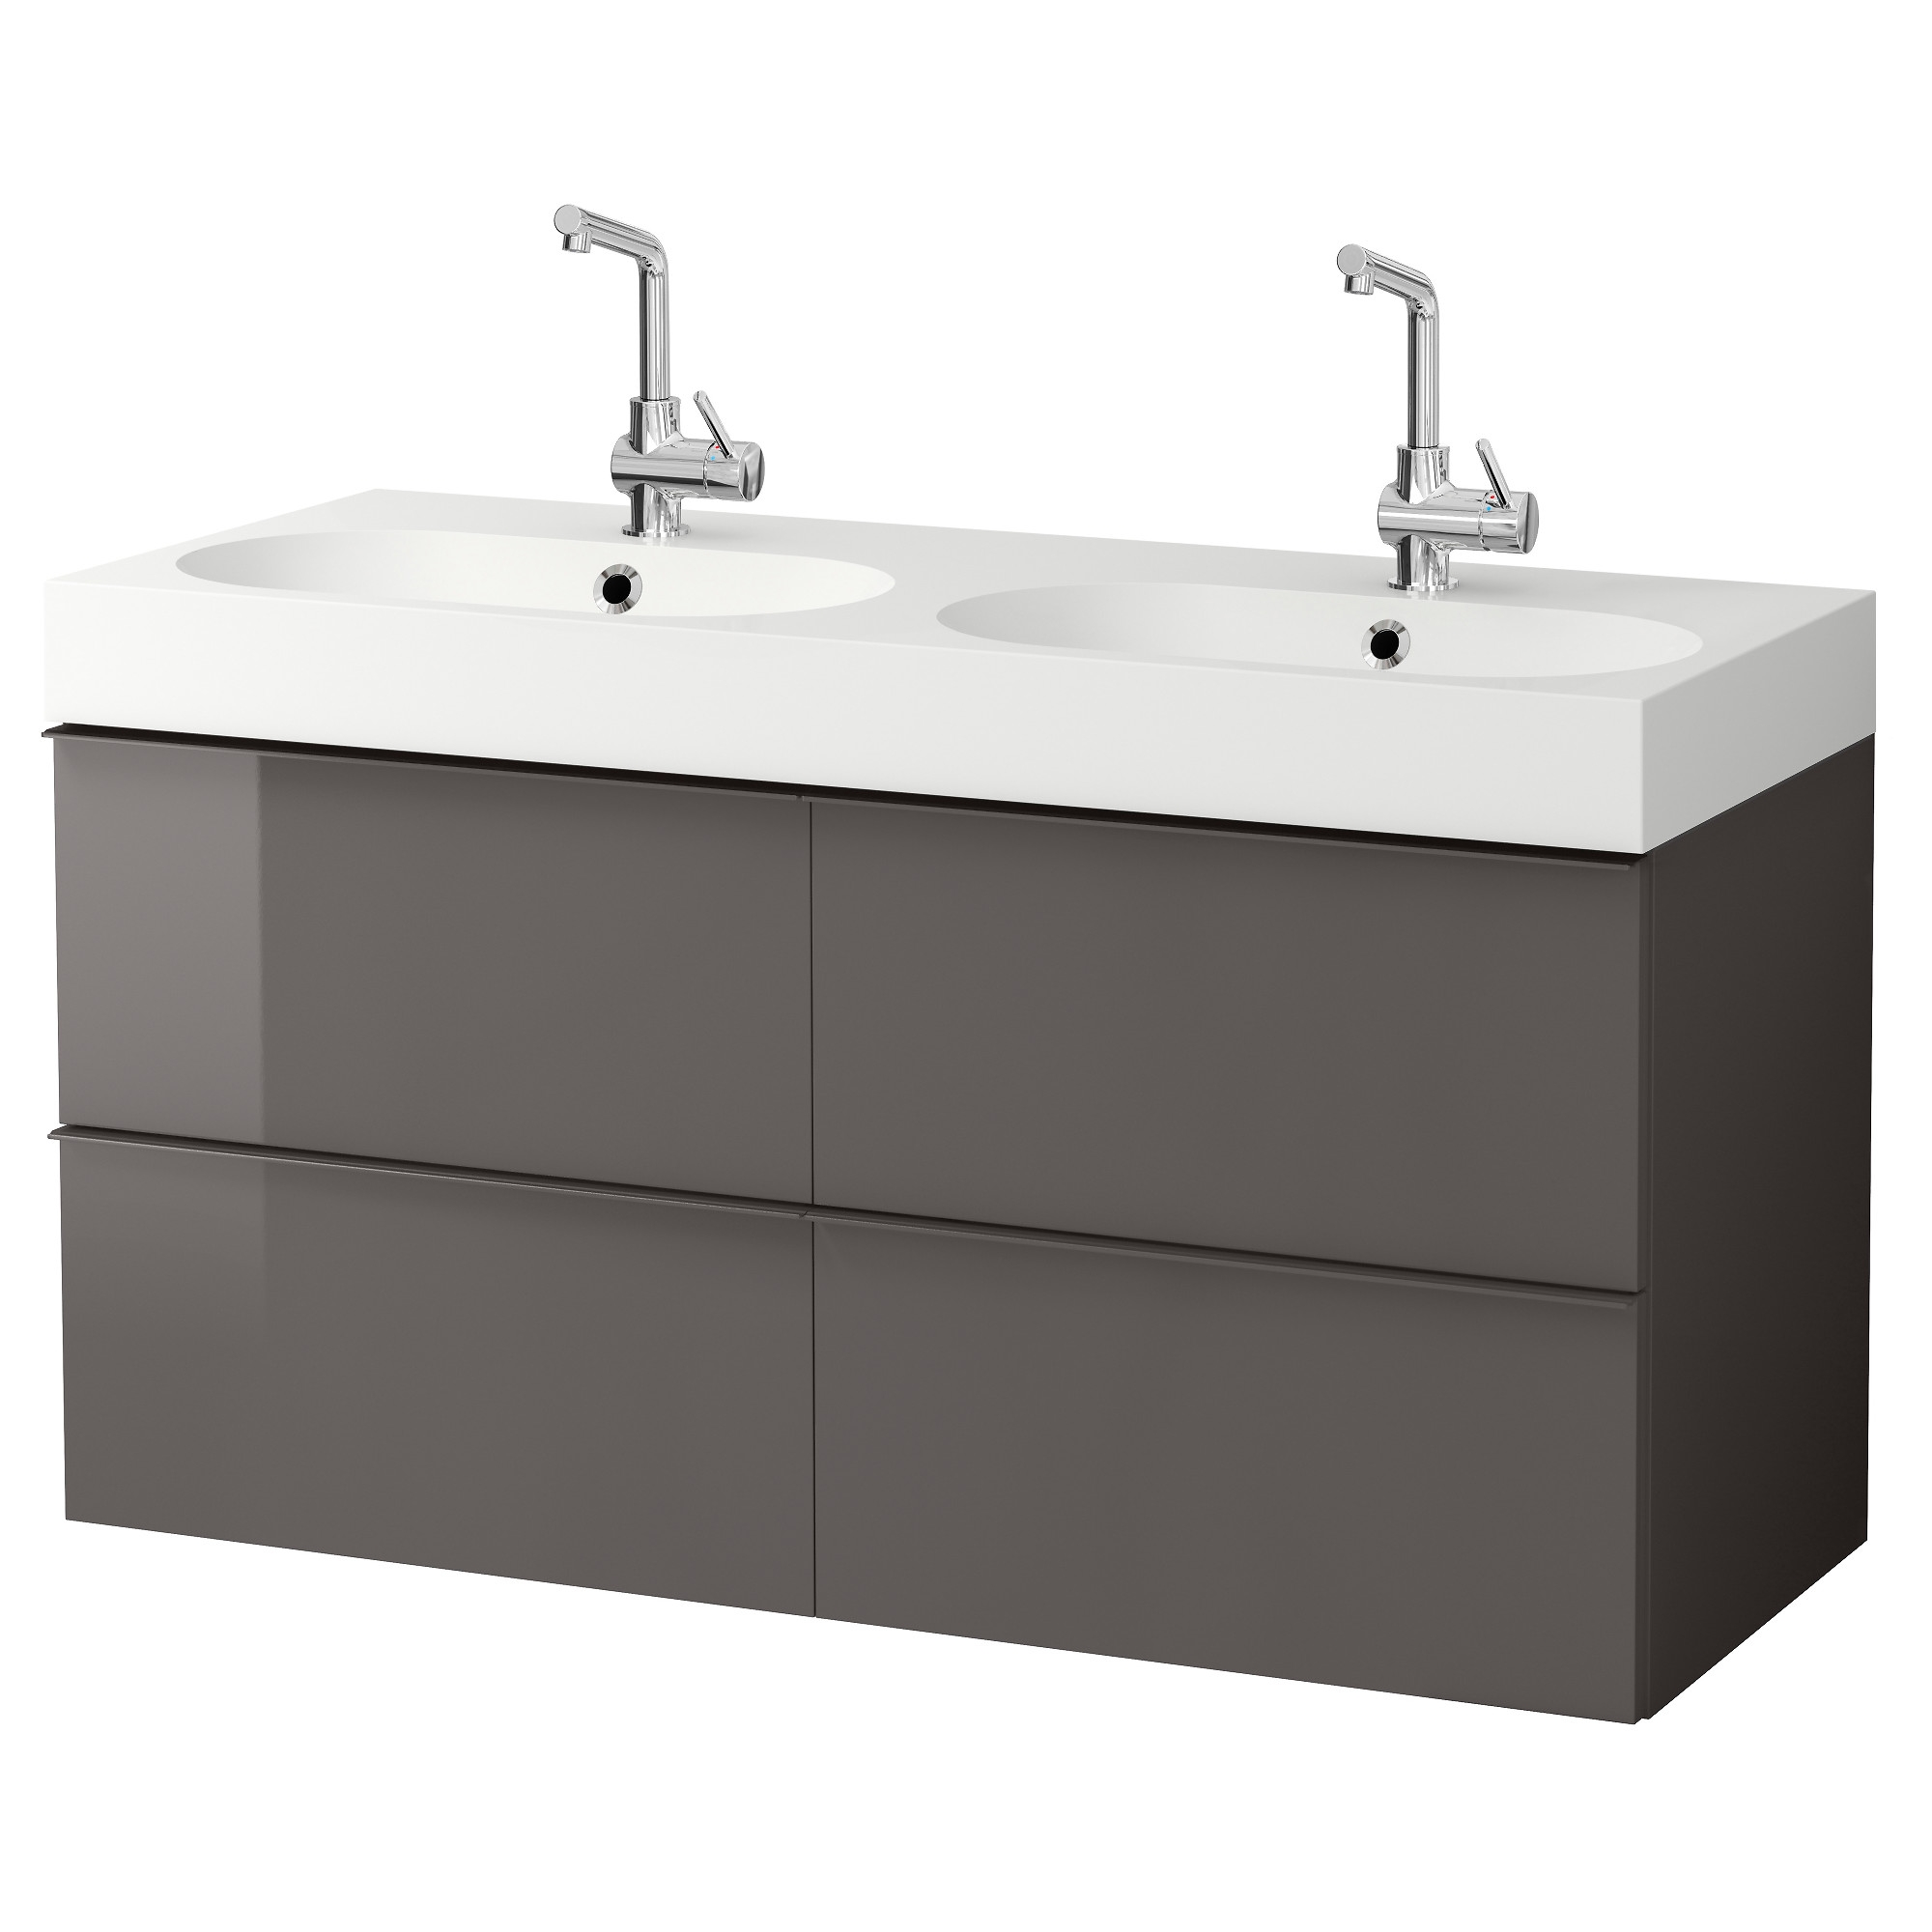 Ikea Bathroom Sink And Unit